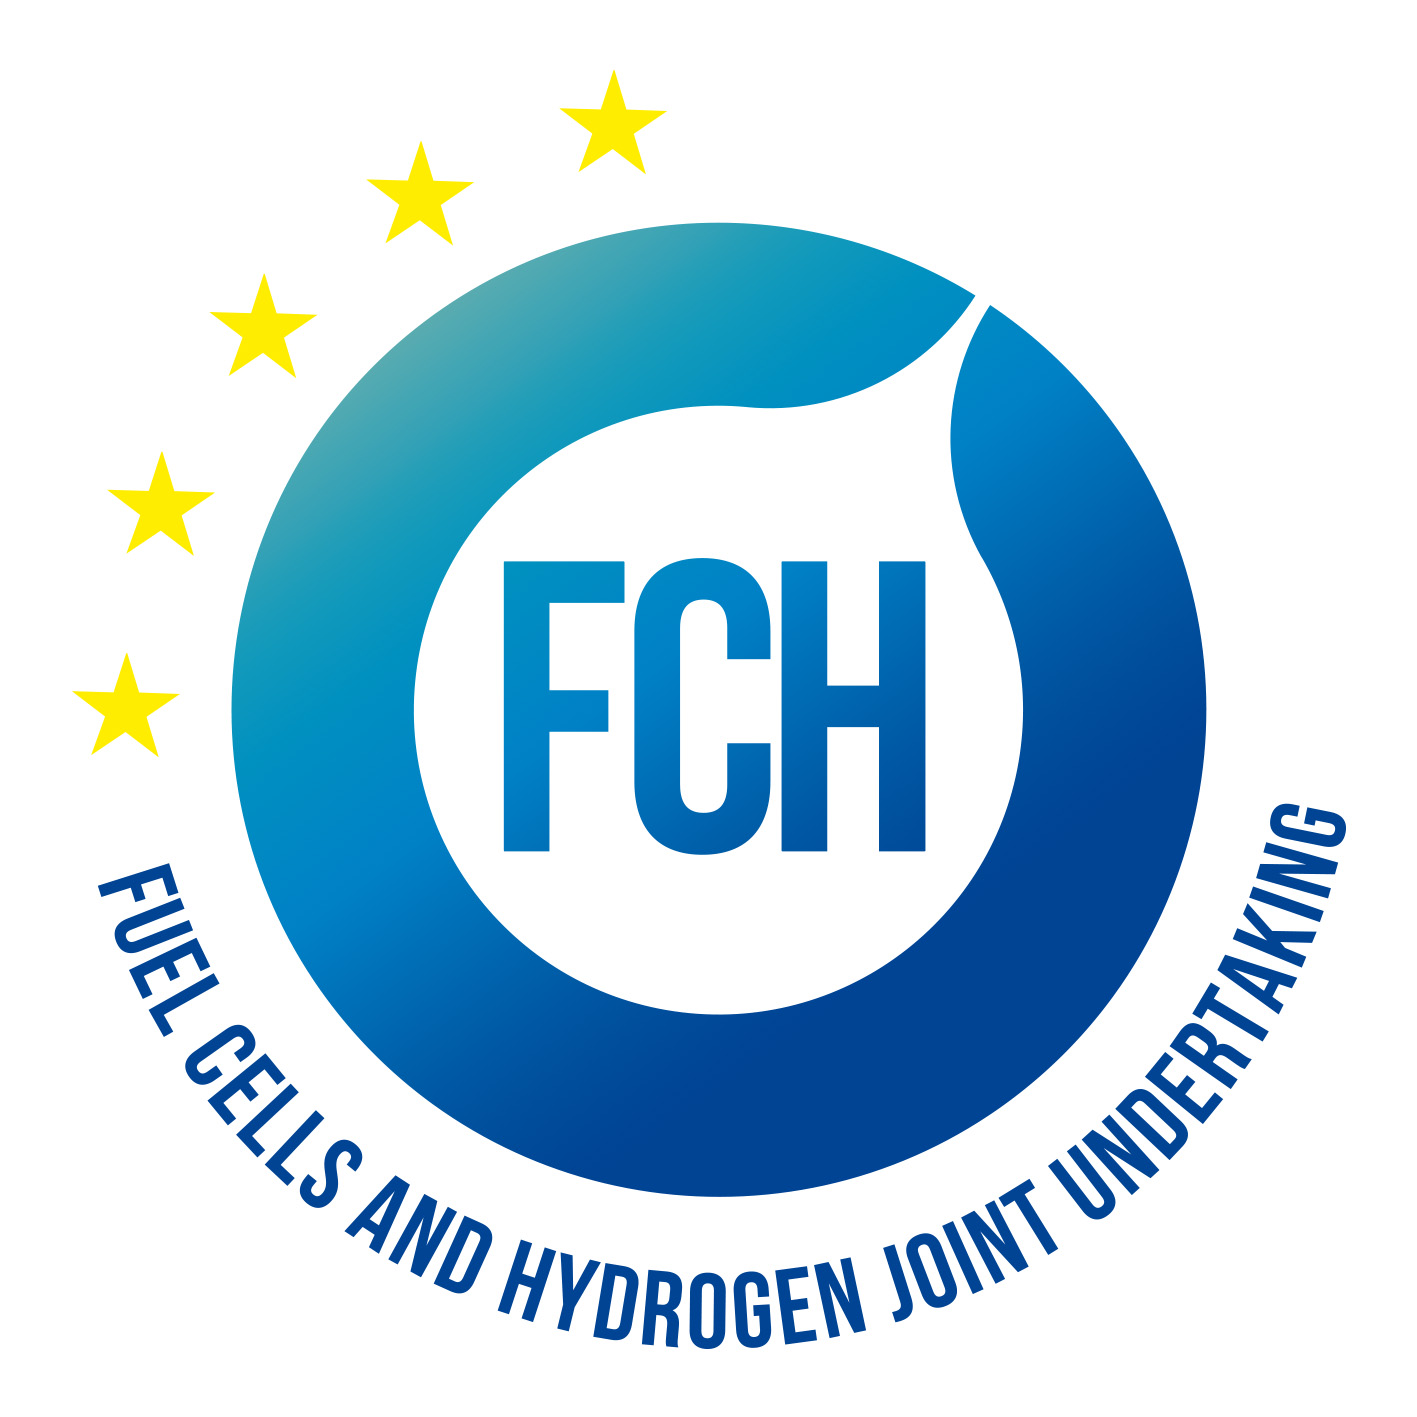 Fuel Cells and Hydrogen Joint Undertaking (FCH JU)